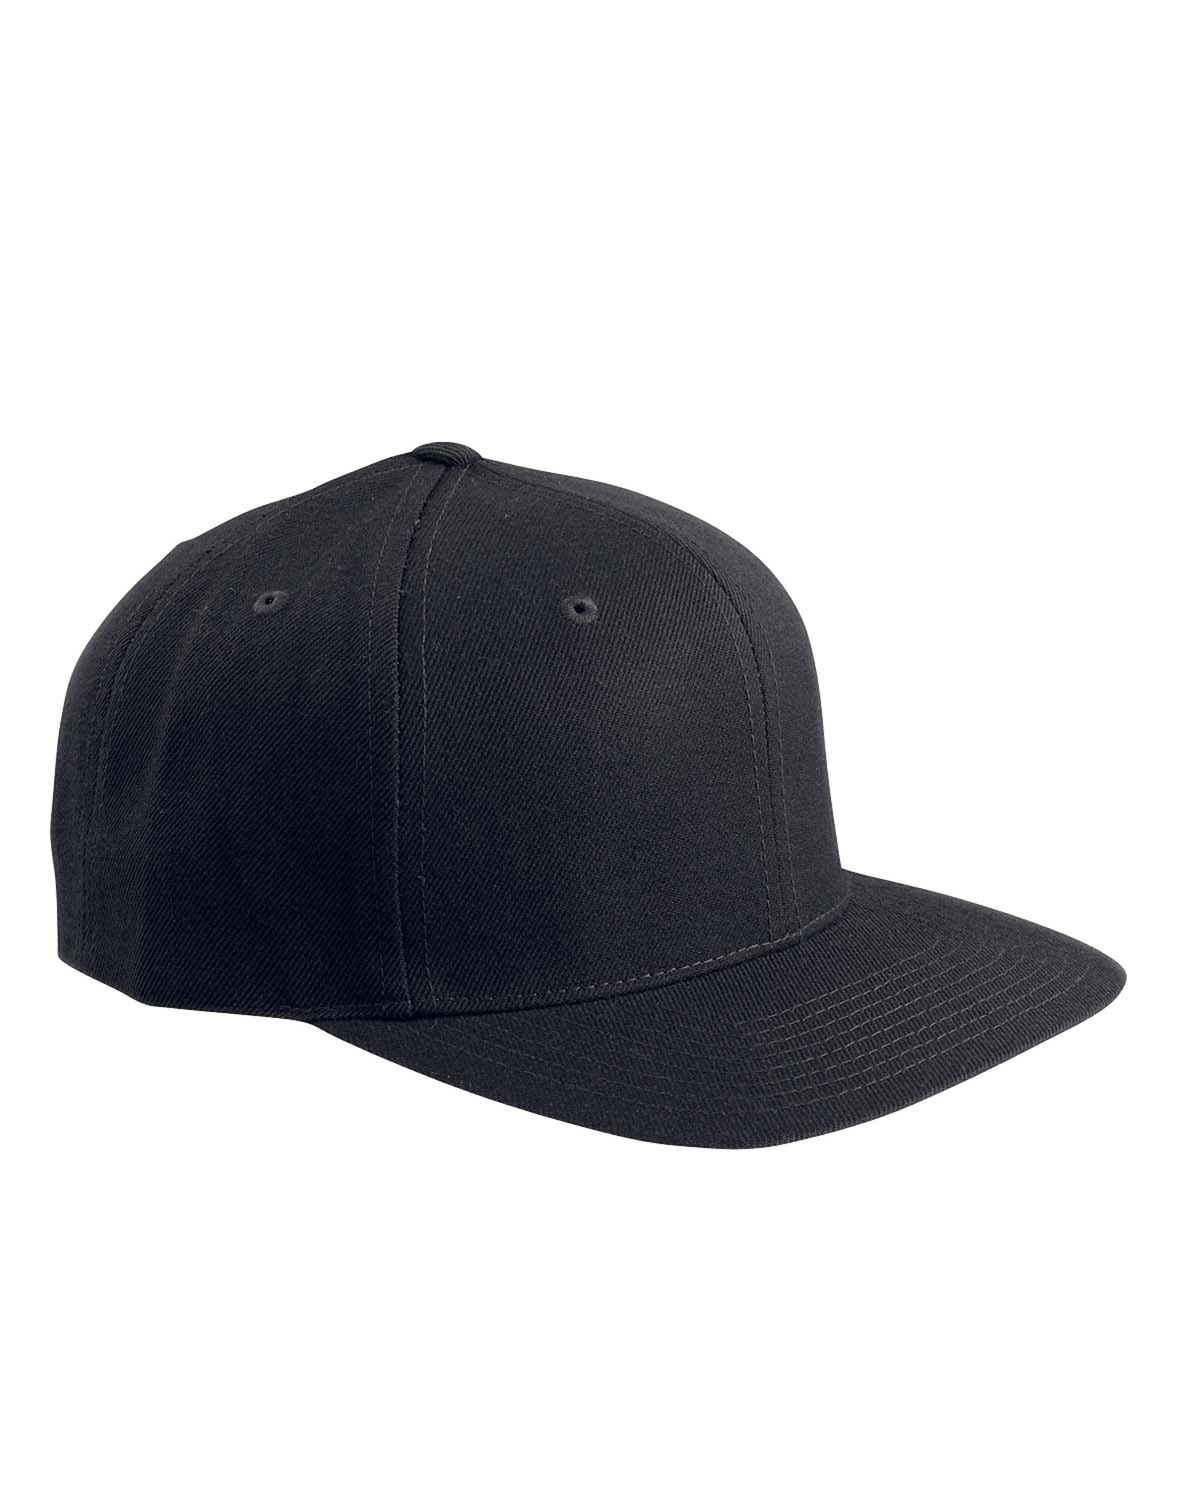 Adult 6-Panel Structured Flat Visor Classic Snapback